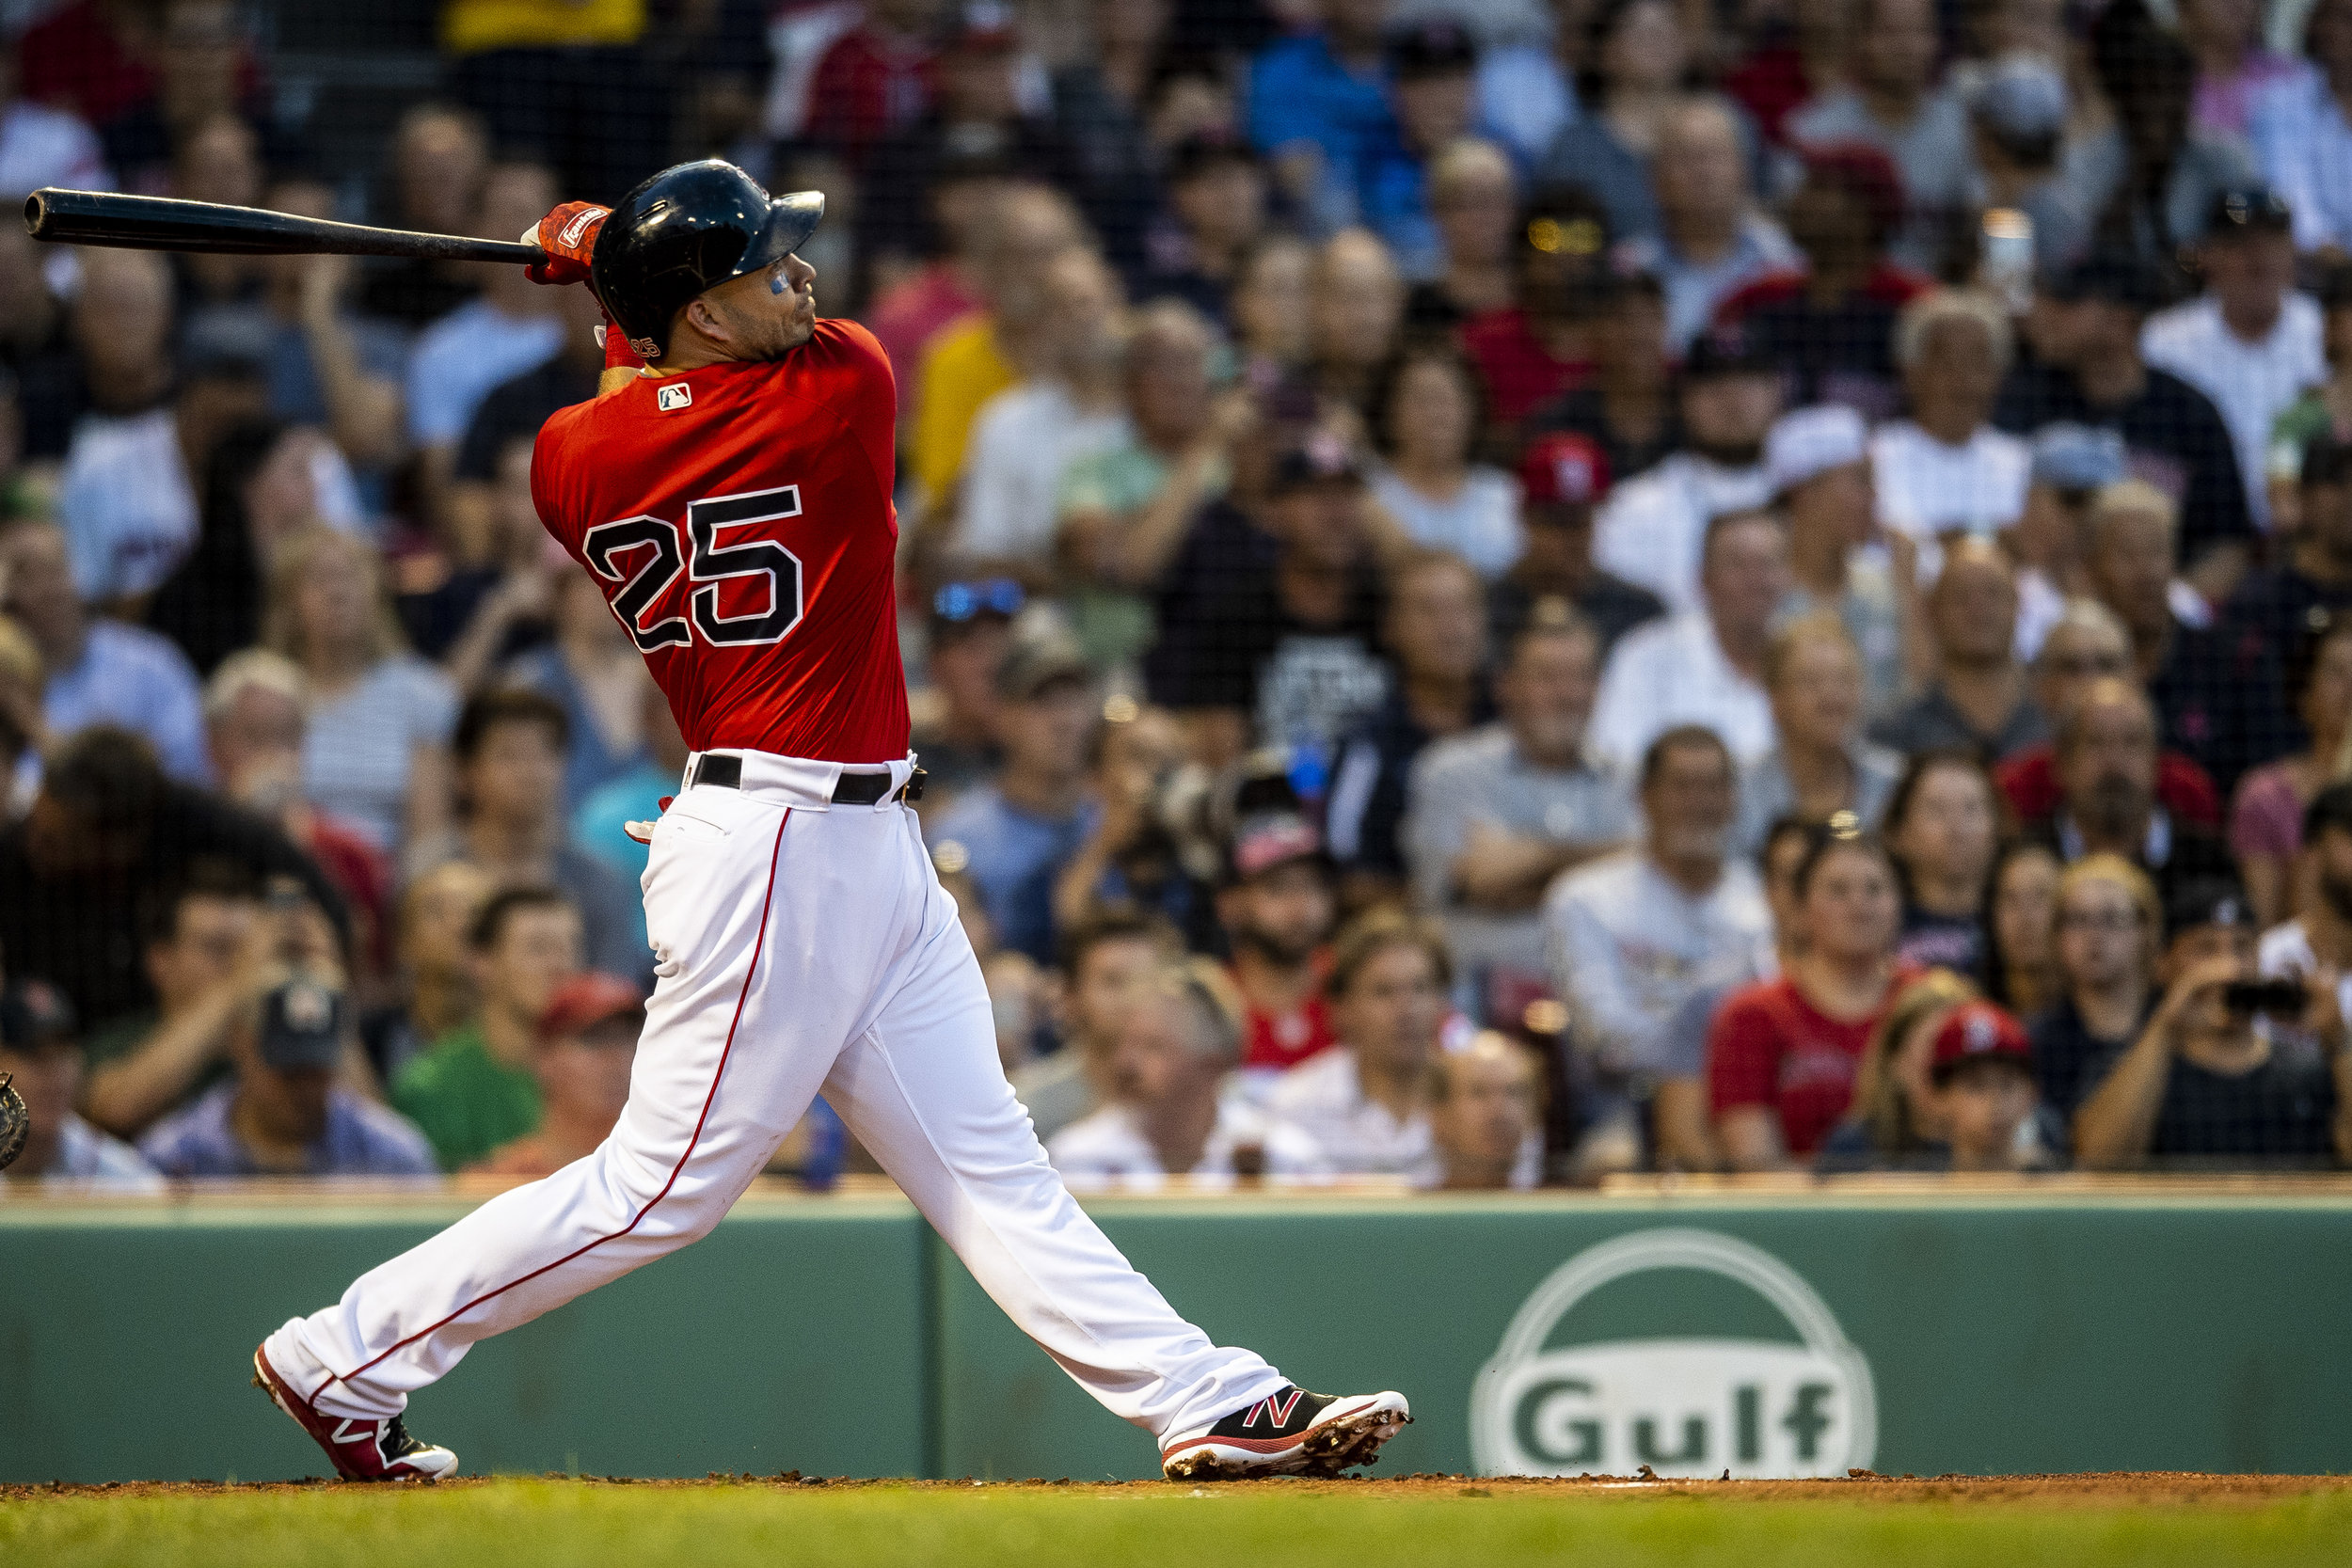 August 3, 2018, Boston, MA: Boston Red Sox infielder Steve Pearce swings and hits a home run as the Boston Red Sox face the New York Yankees at Fenway Park in Boston, Massachusetts on Friday, August 3, 2018. (Photo by Matthew Thomas/Boston Red Sox)